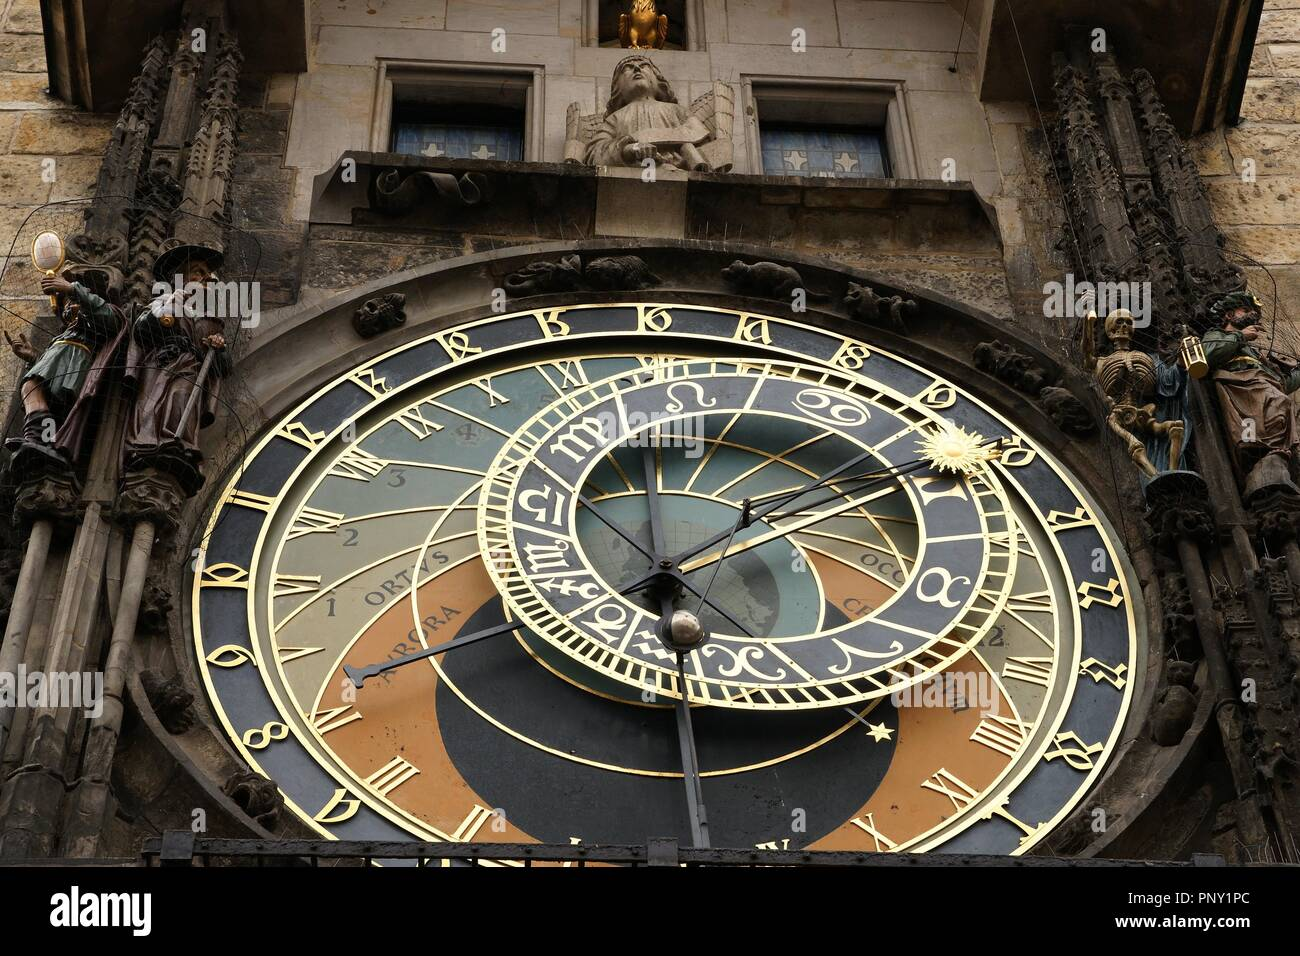 The Prague Astronomical Clock or Prague Orloj mounted on the southern wall of Old Town City Hall in the Old Town Square. Astronomical dial.  Czech Republic. - Stock Image